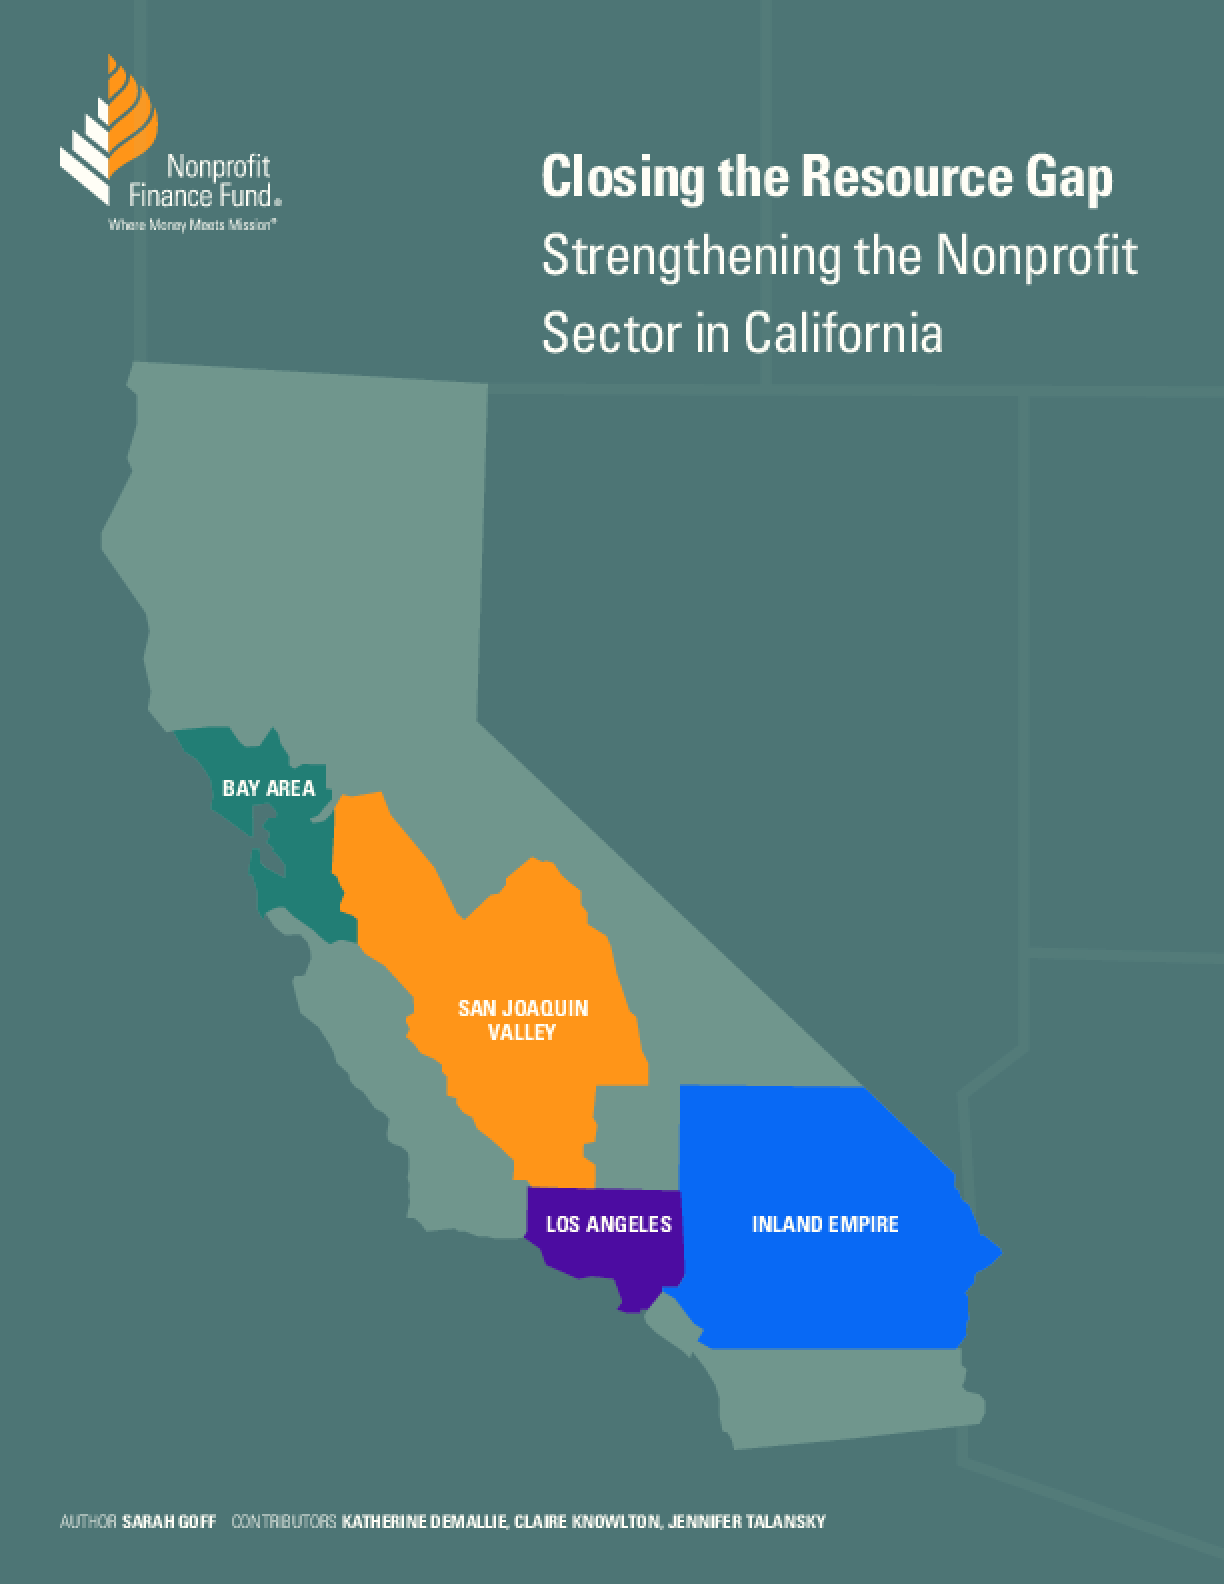 Closing the Resource Gap: Strengthening the Nonprofit Sector in California